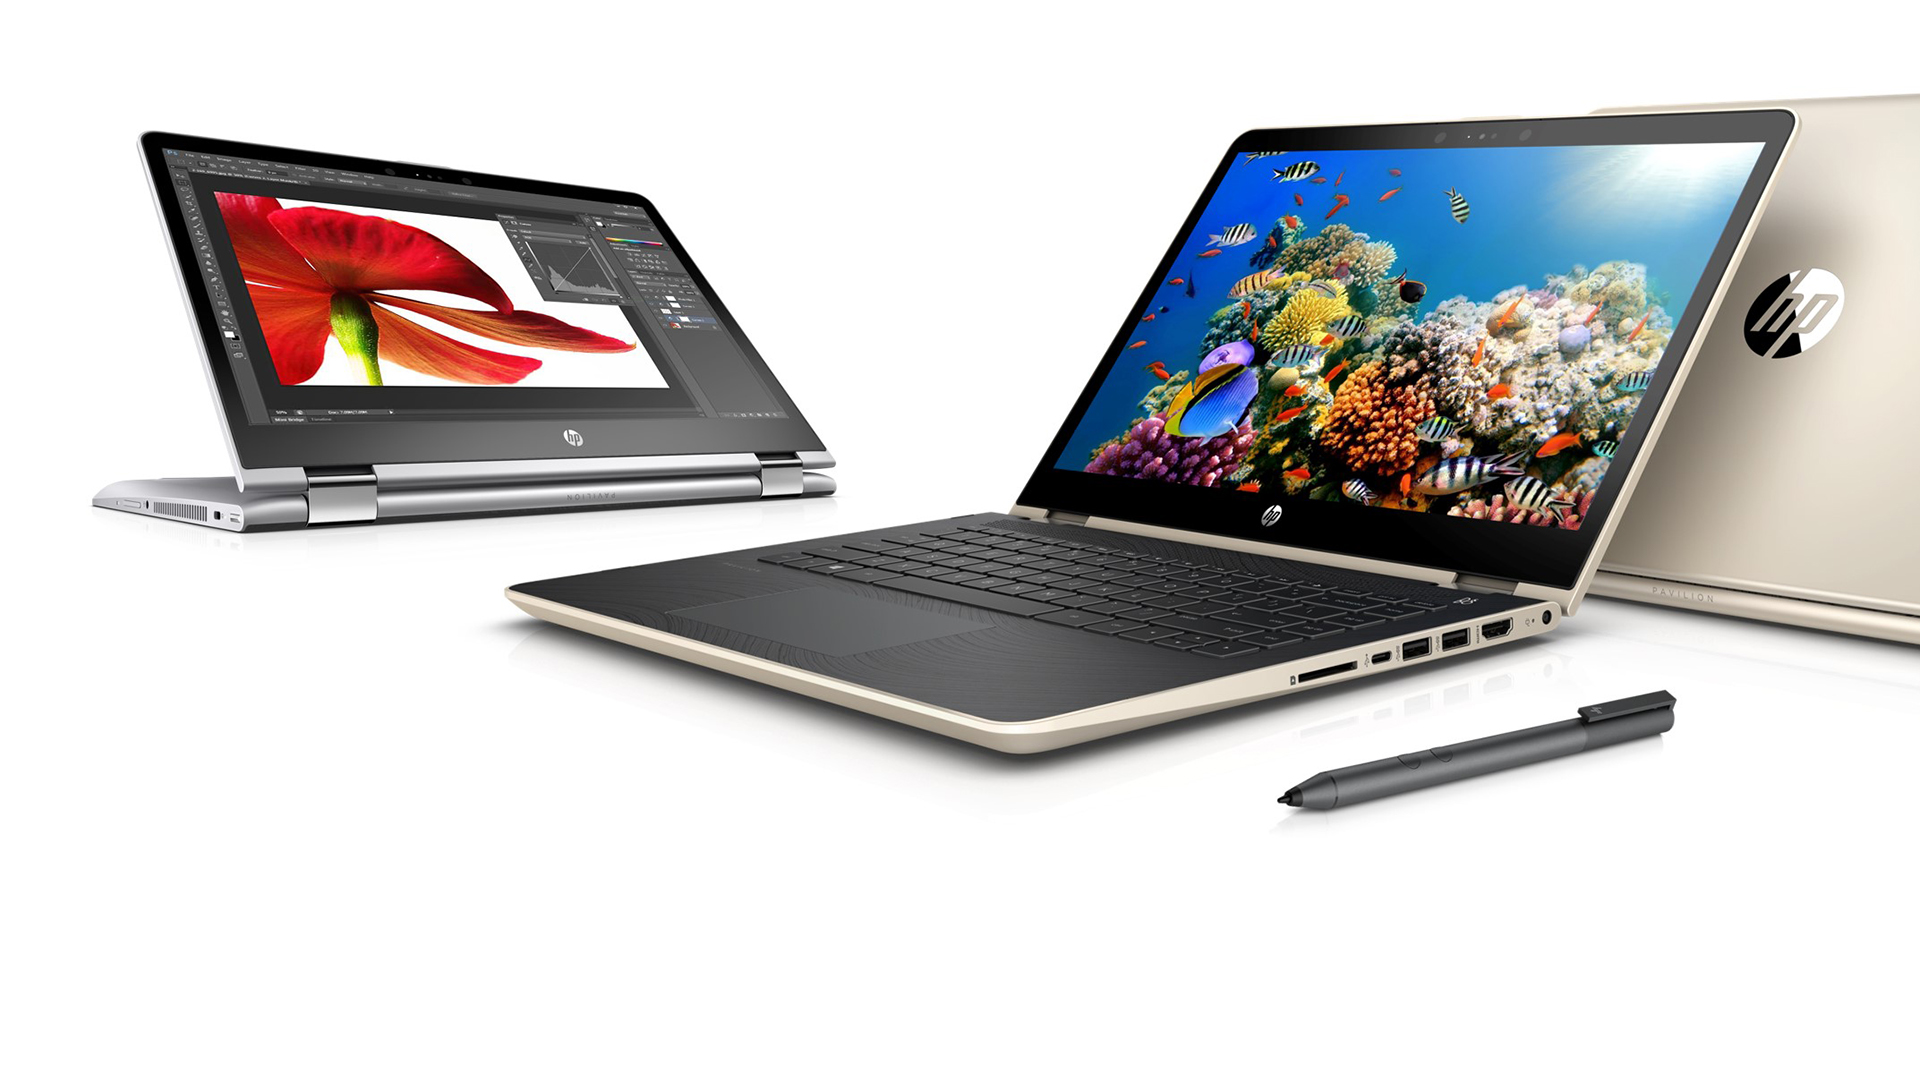 Hp Keeps New Pavilion Laptop Prices Low While Adding Ir Cameras Pen Support Ars Technica